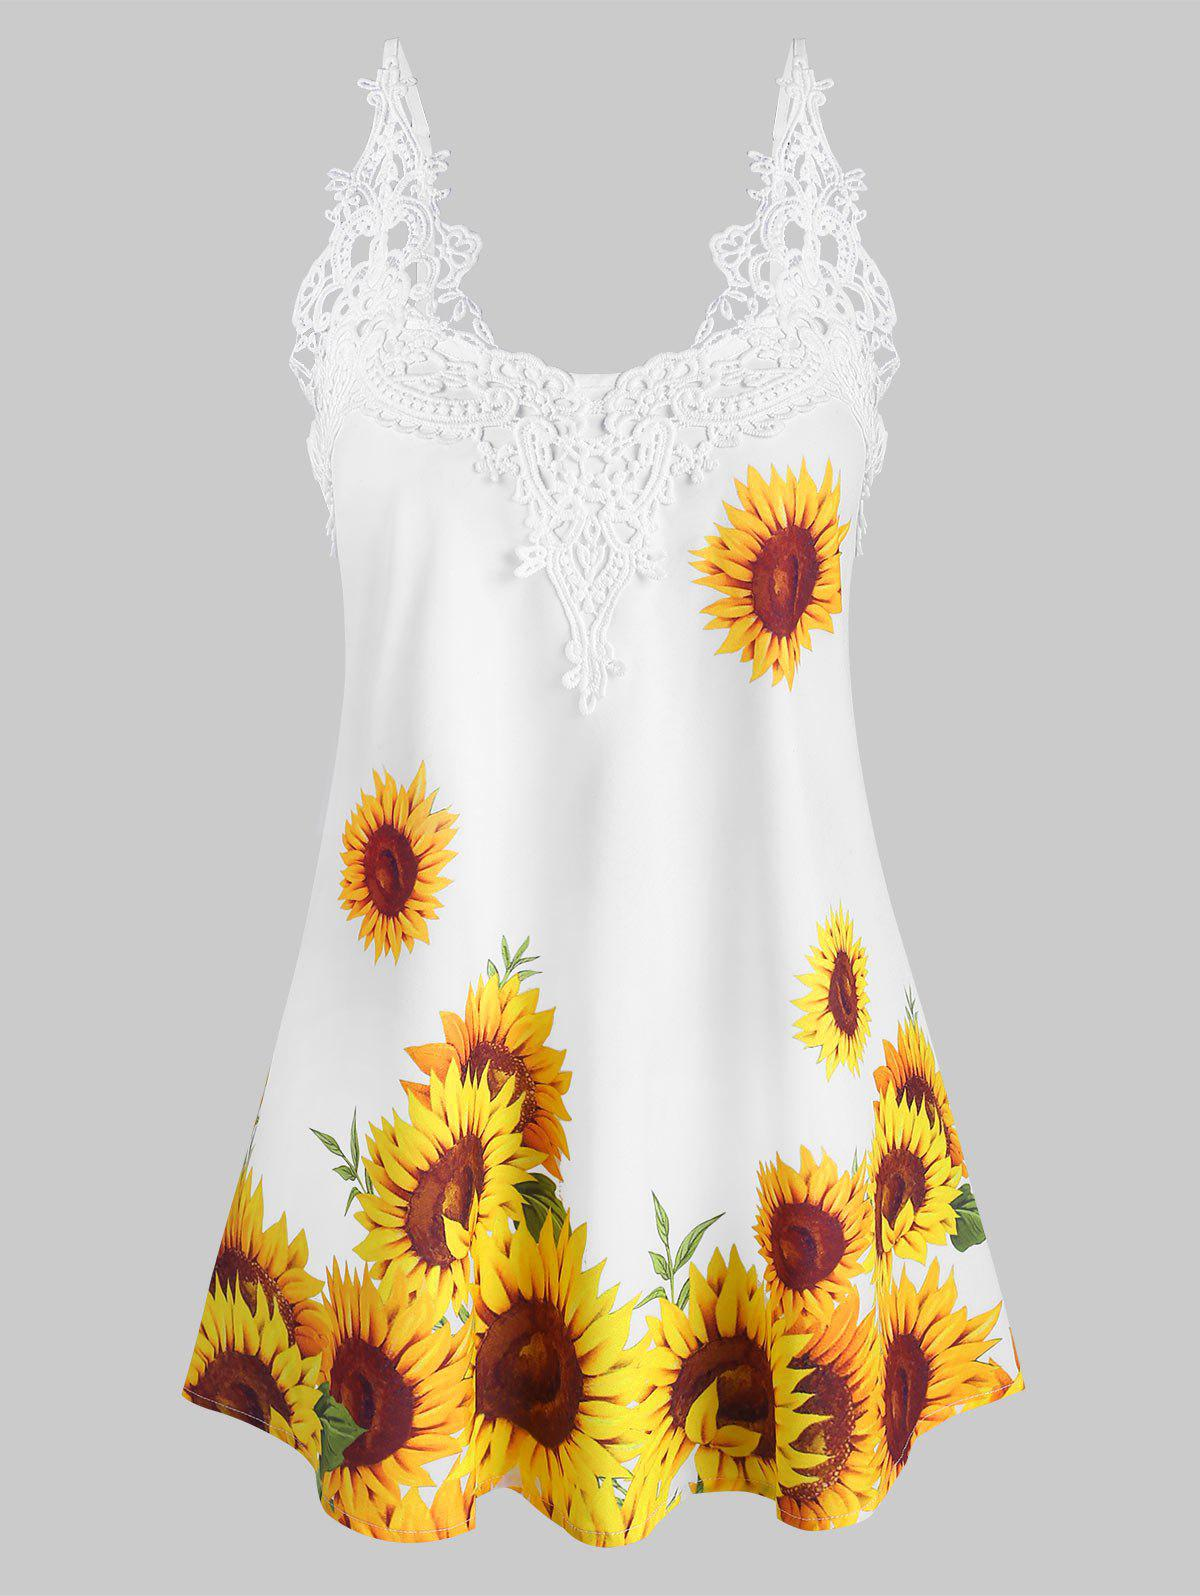 Discount Crochet Lace Panel Sunflower Longline Cami Top